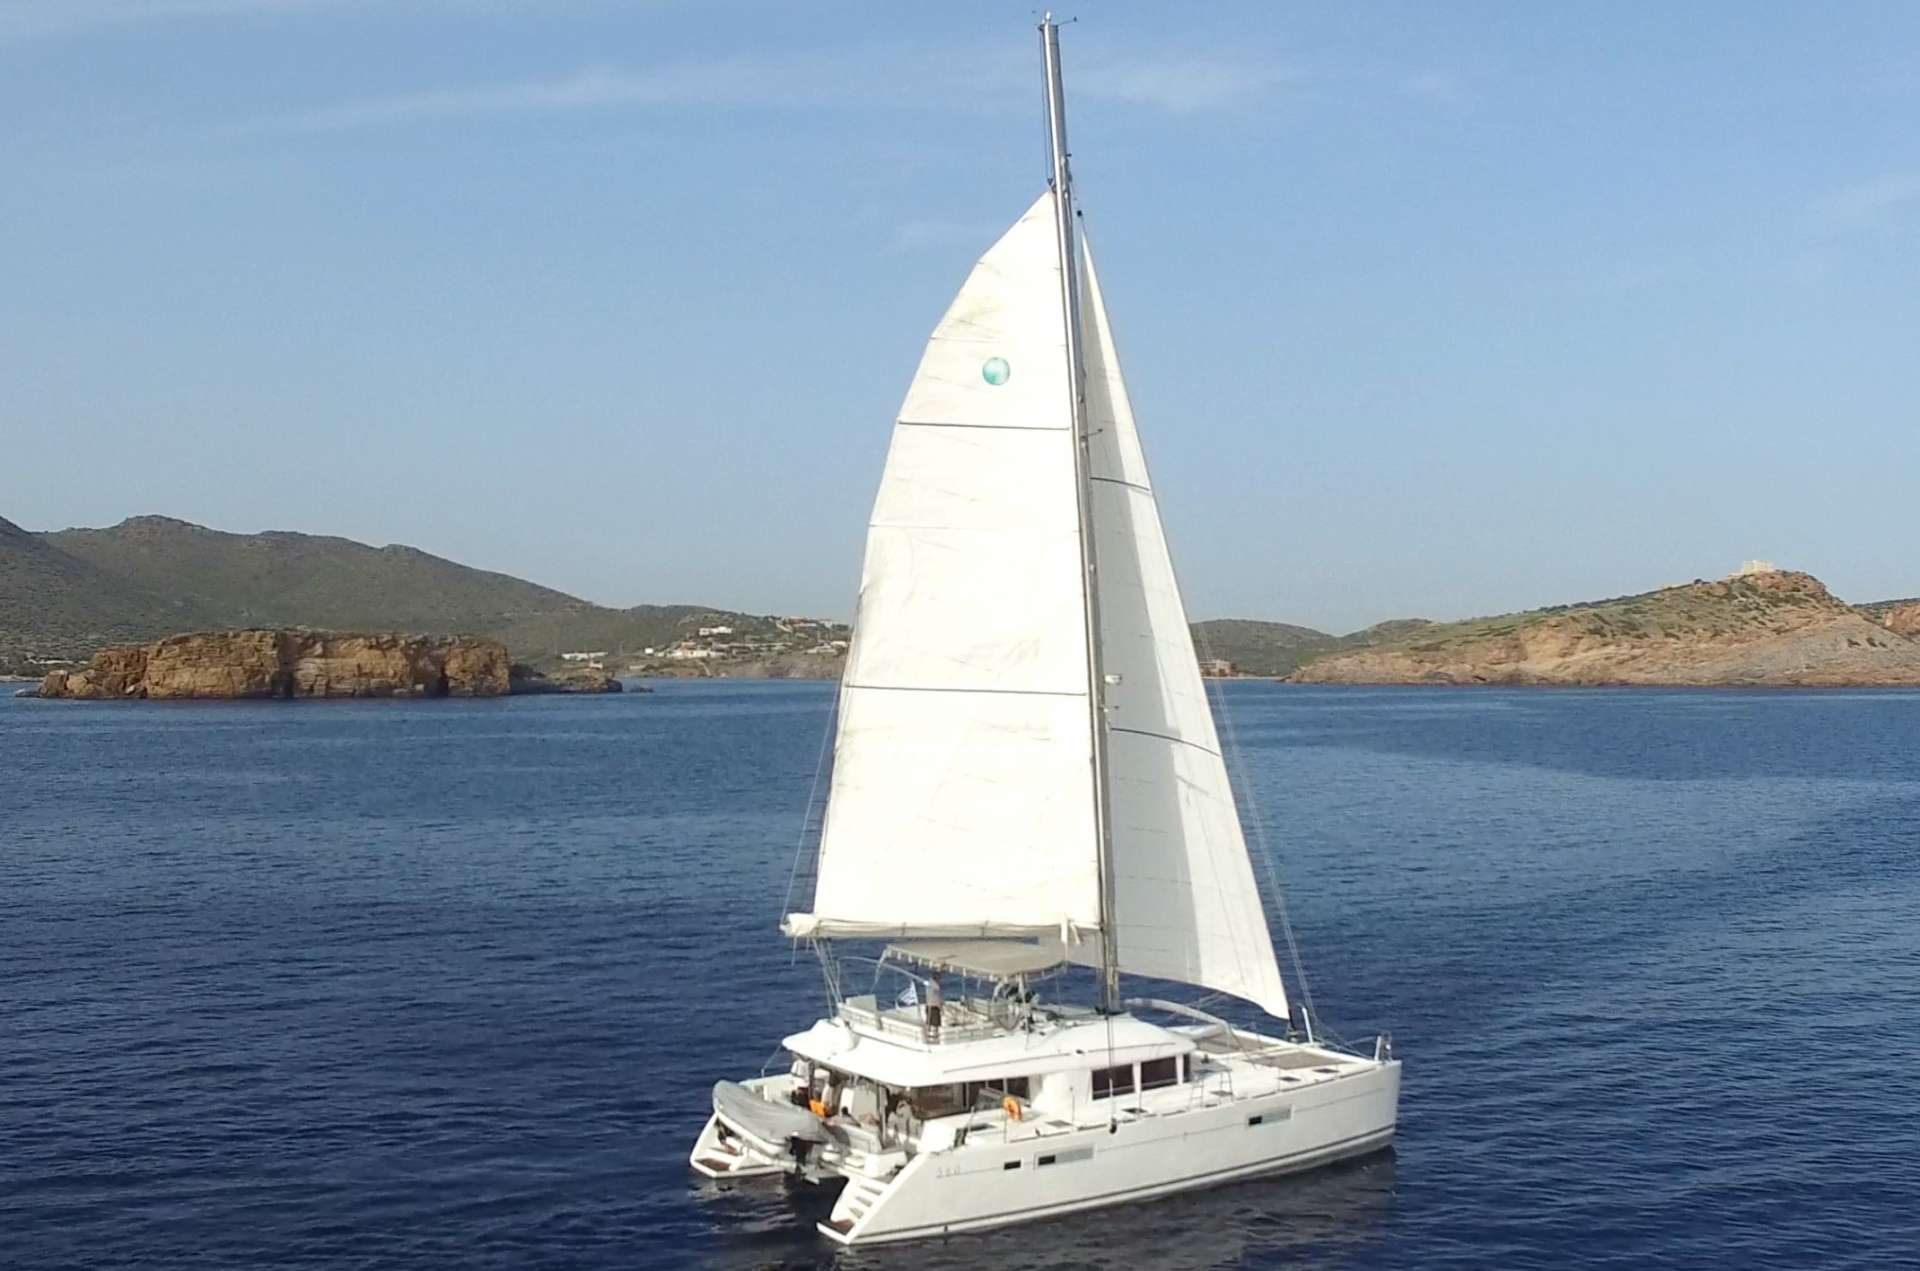 Charter with DADDY'S HOBBY on compassyachtcharters.com